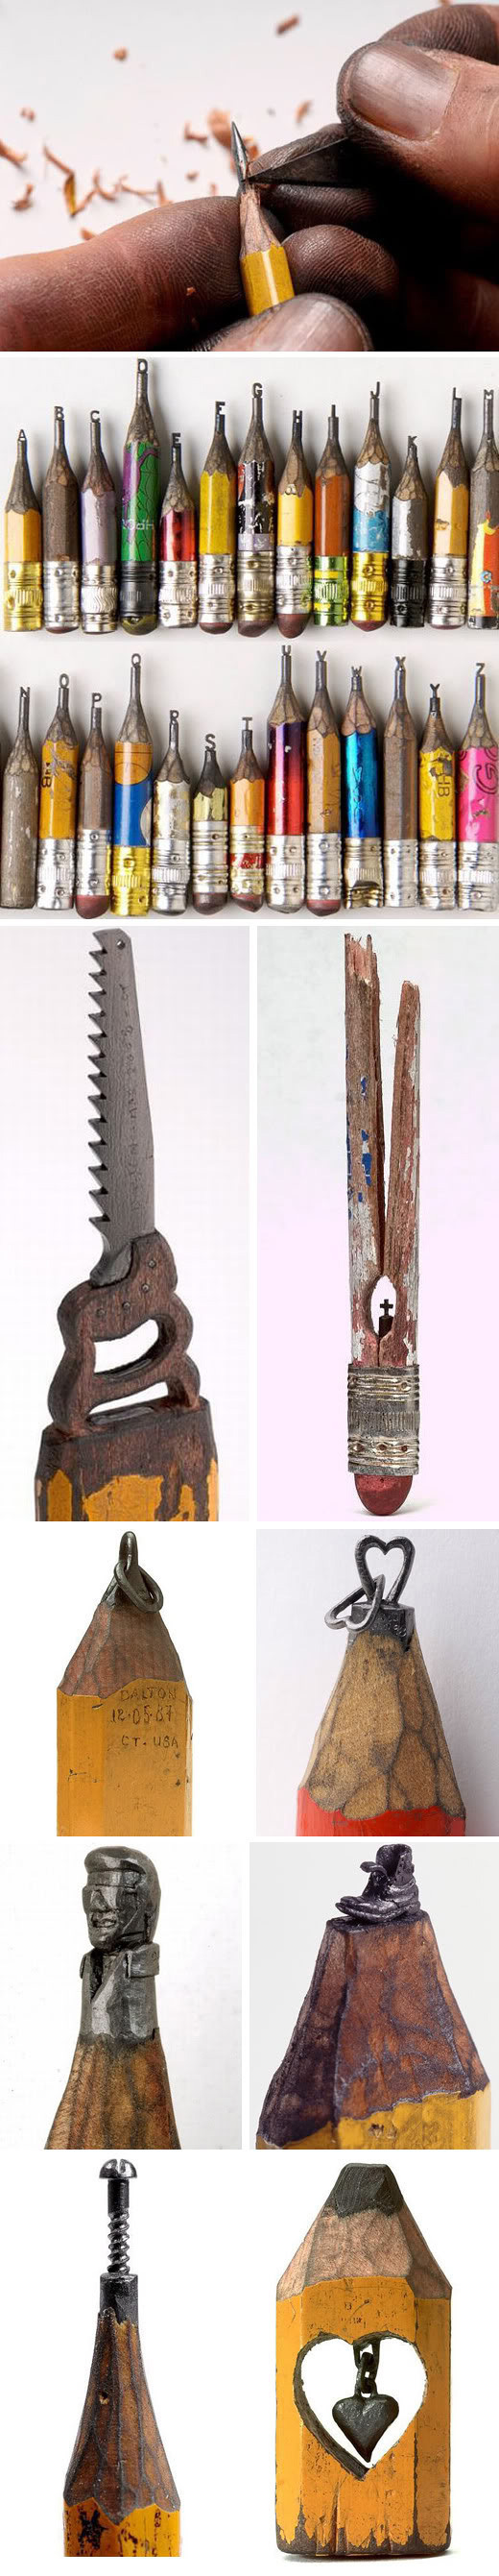 Pencil Carvings #carvings #pencil